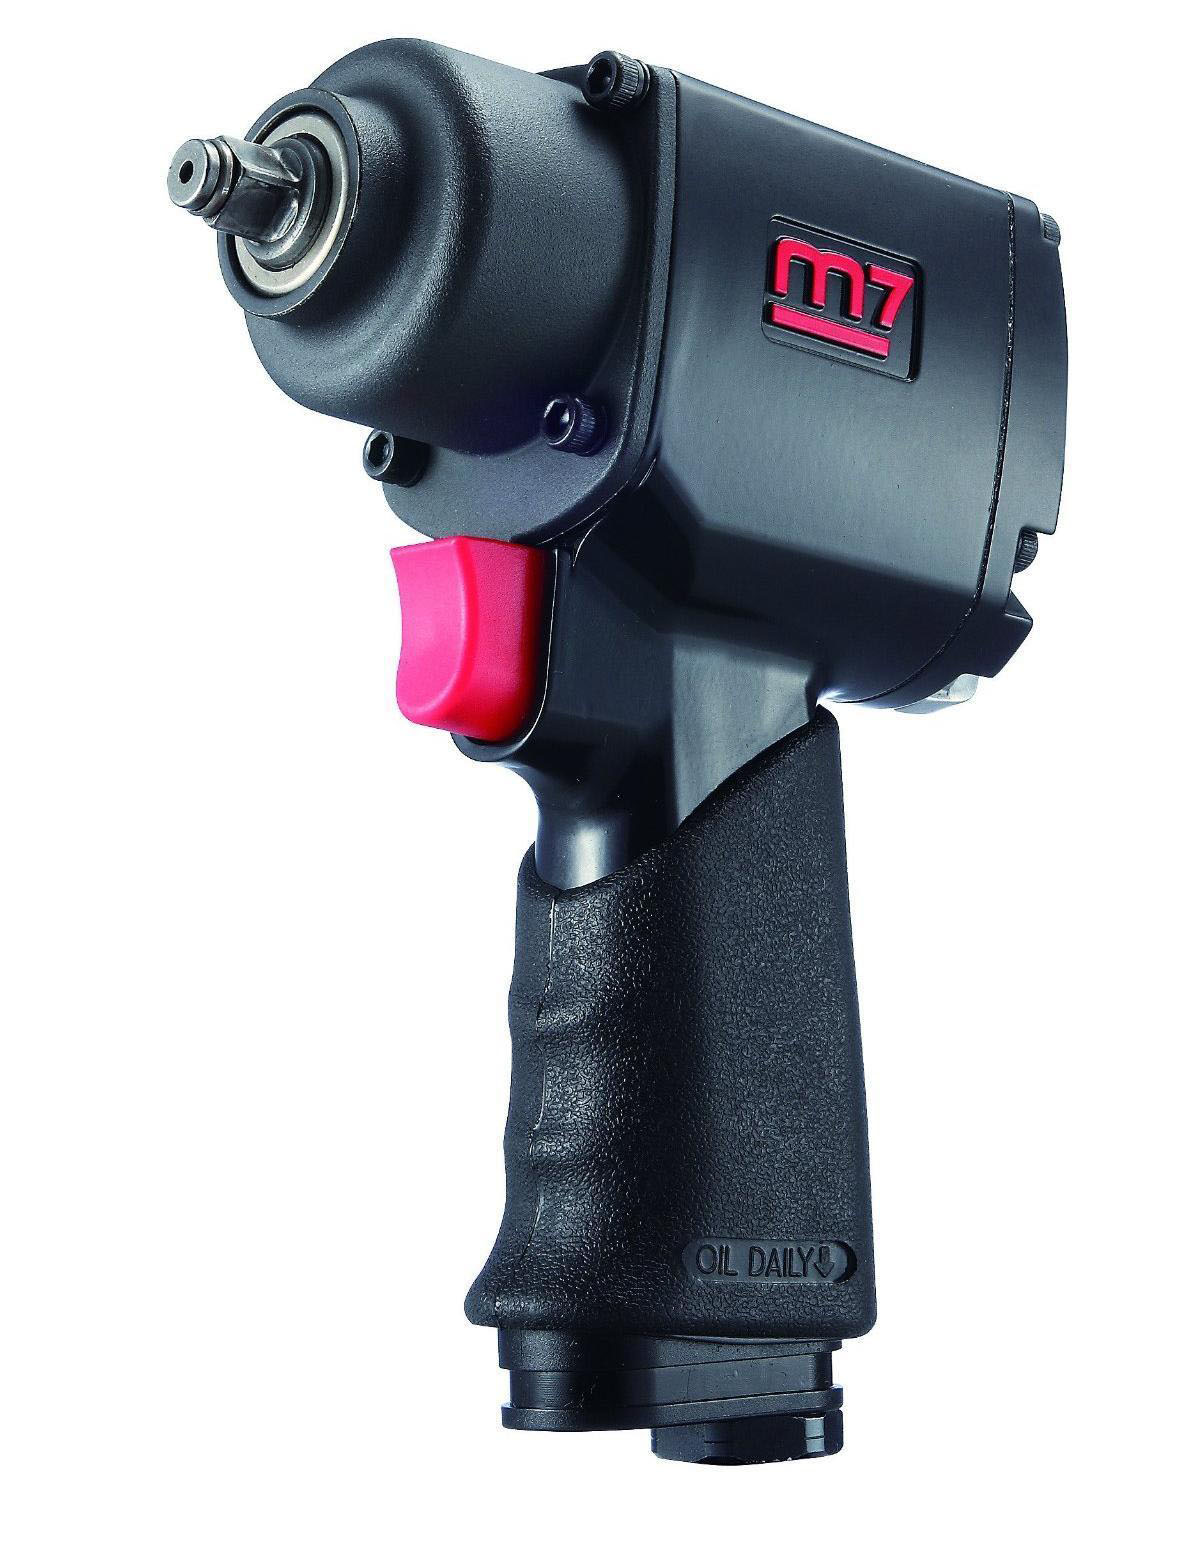 MIGHTY SEVEN NC-4210 - 1/2in Drive Air Impact Wrench; 400 FT-LB Max Torque